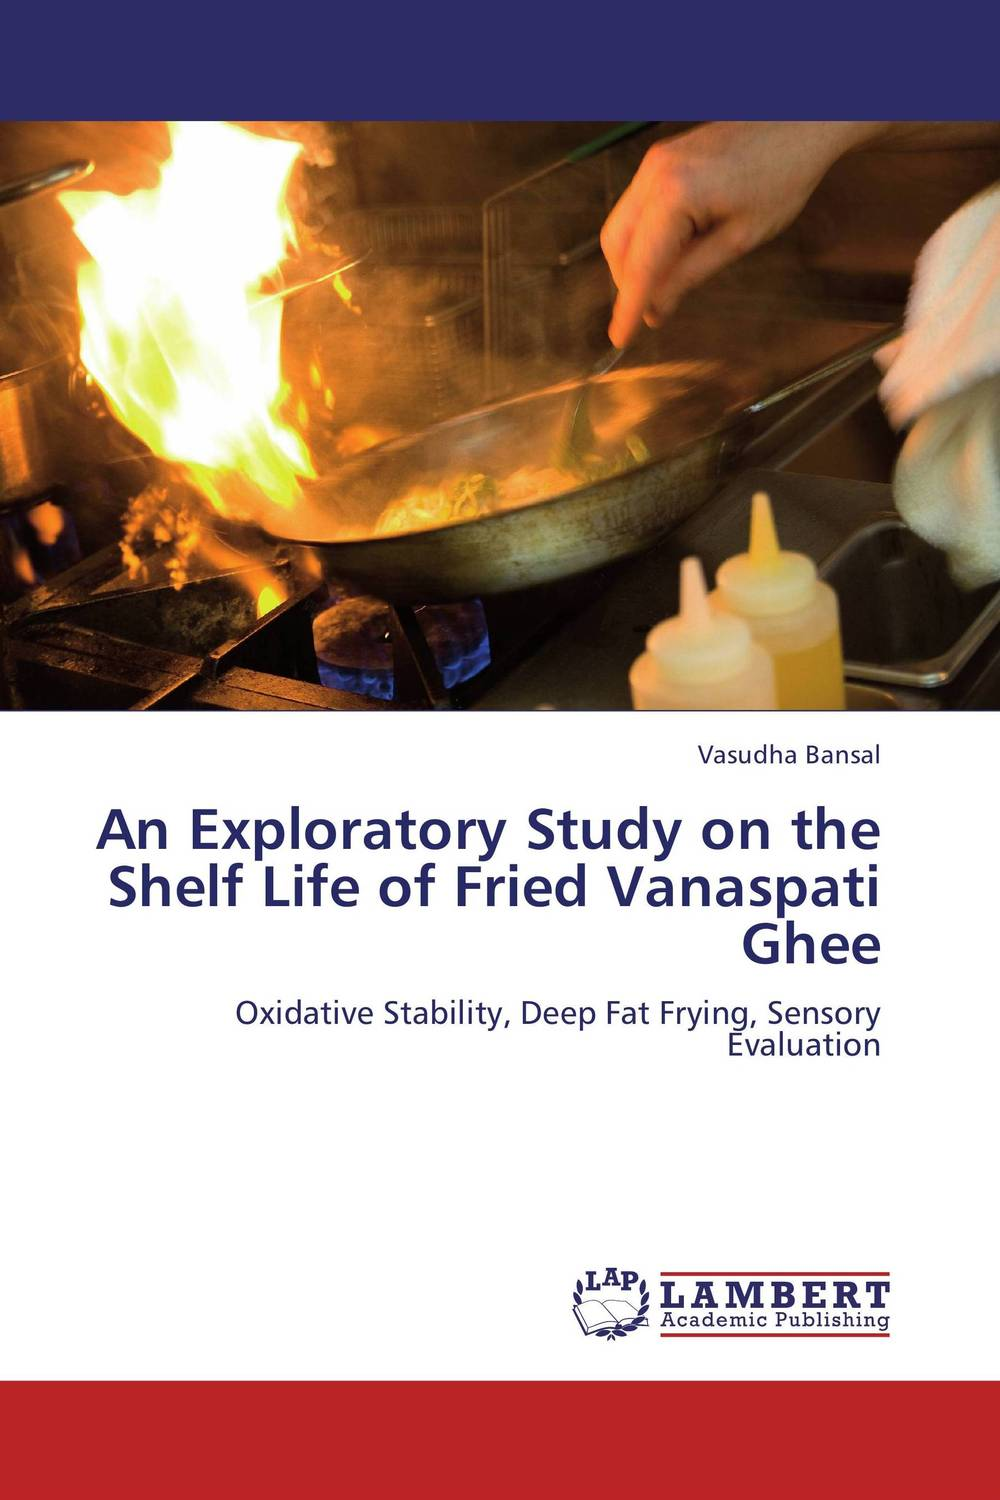 An Exploratory Study on the Shelf Life of Fried Vanaspati Ghee the greek turkish dispute on the continental shelf in the aegean sea